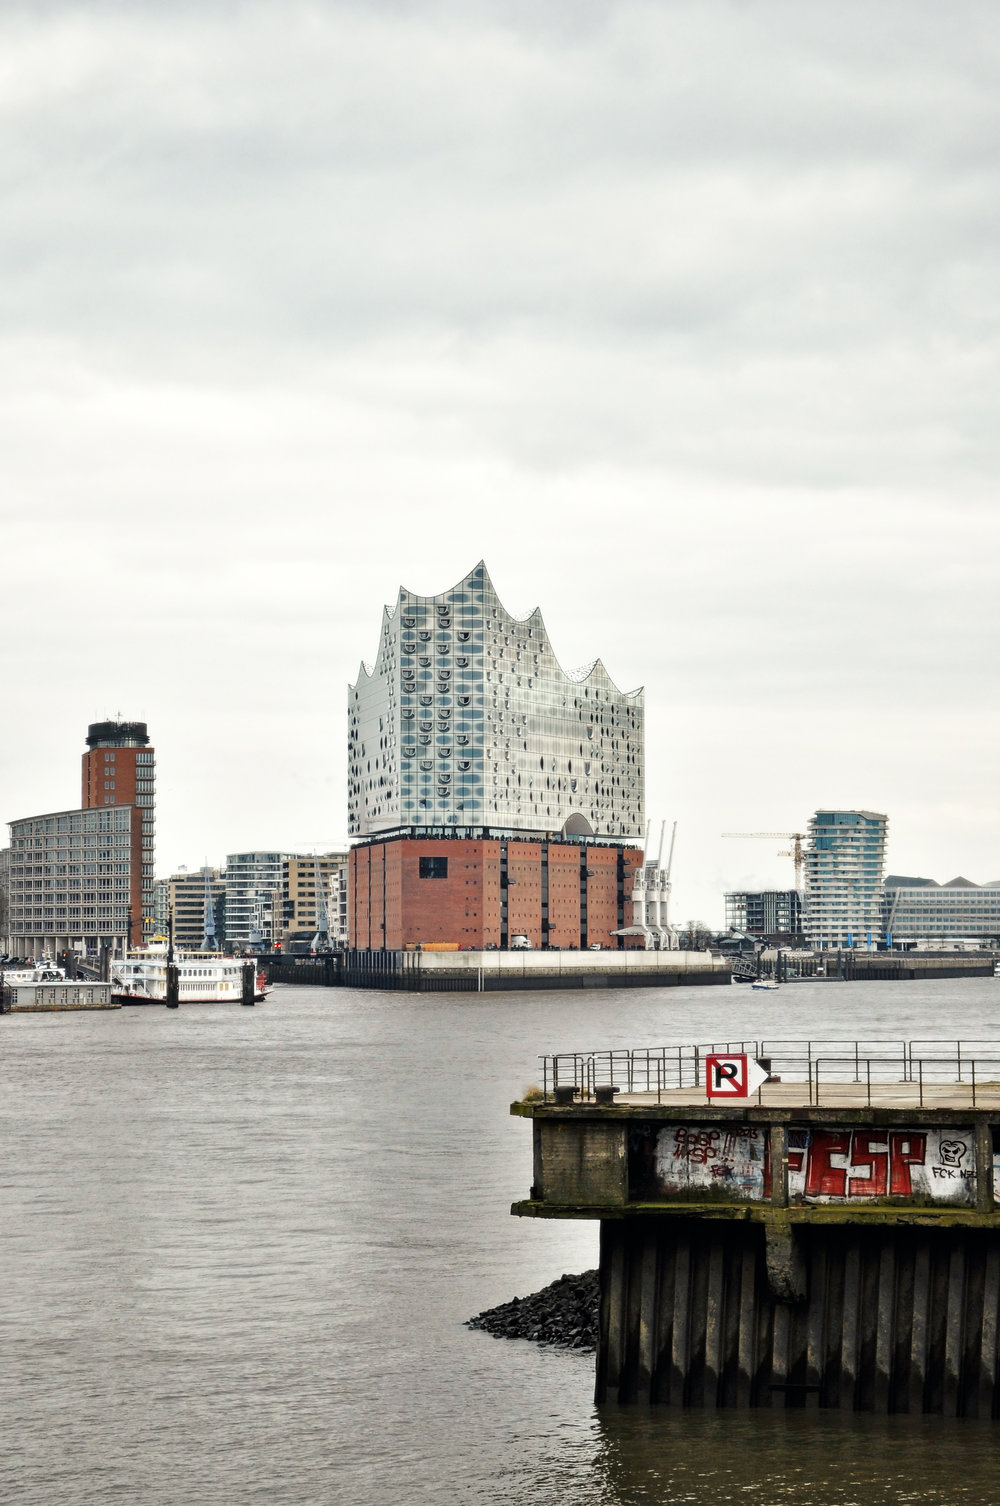 Elbphilharmoniefrom the harbor, photo by author